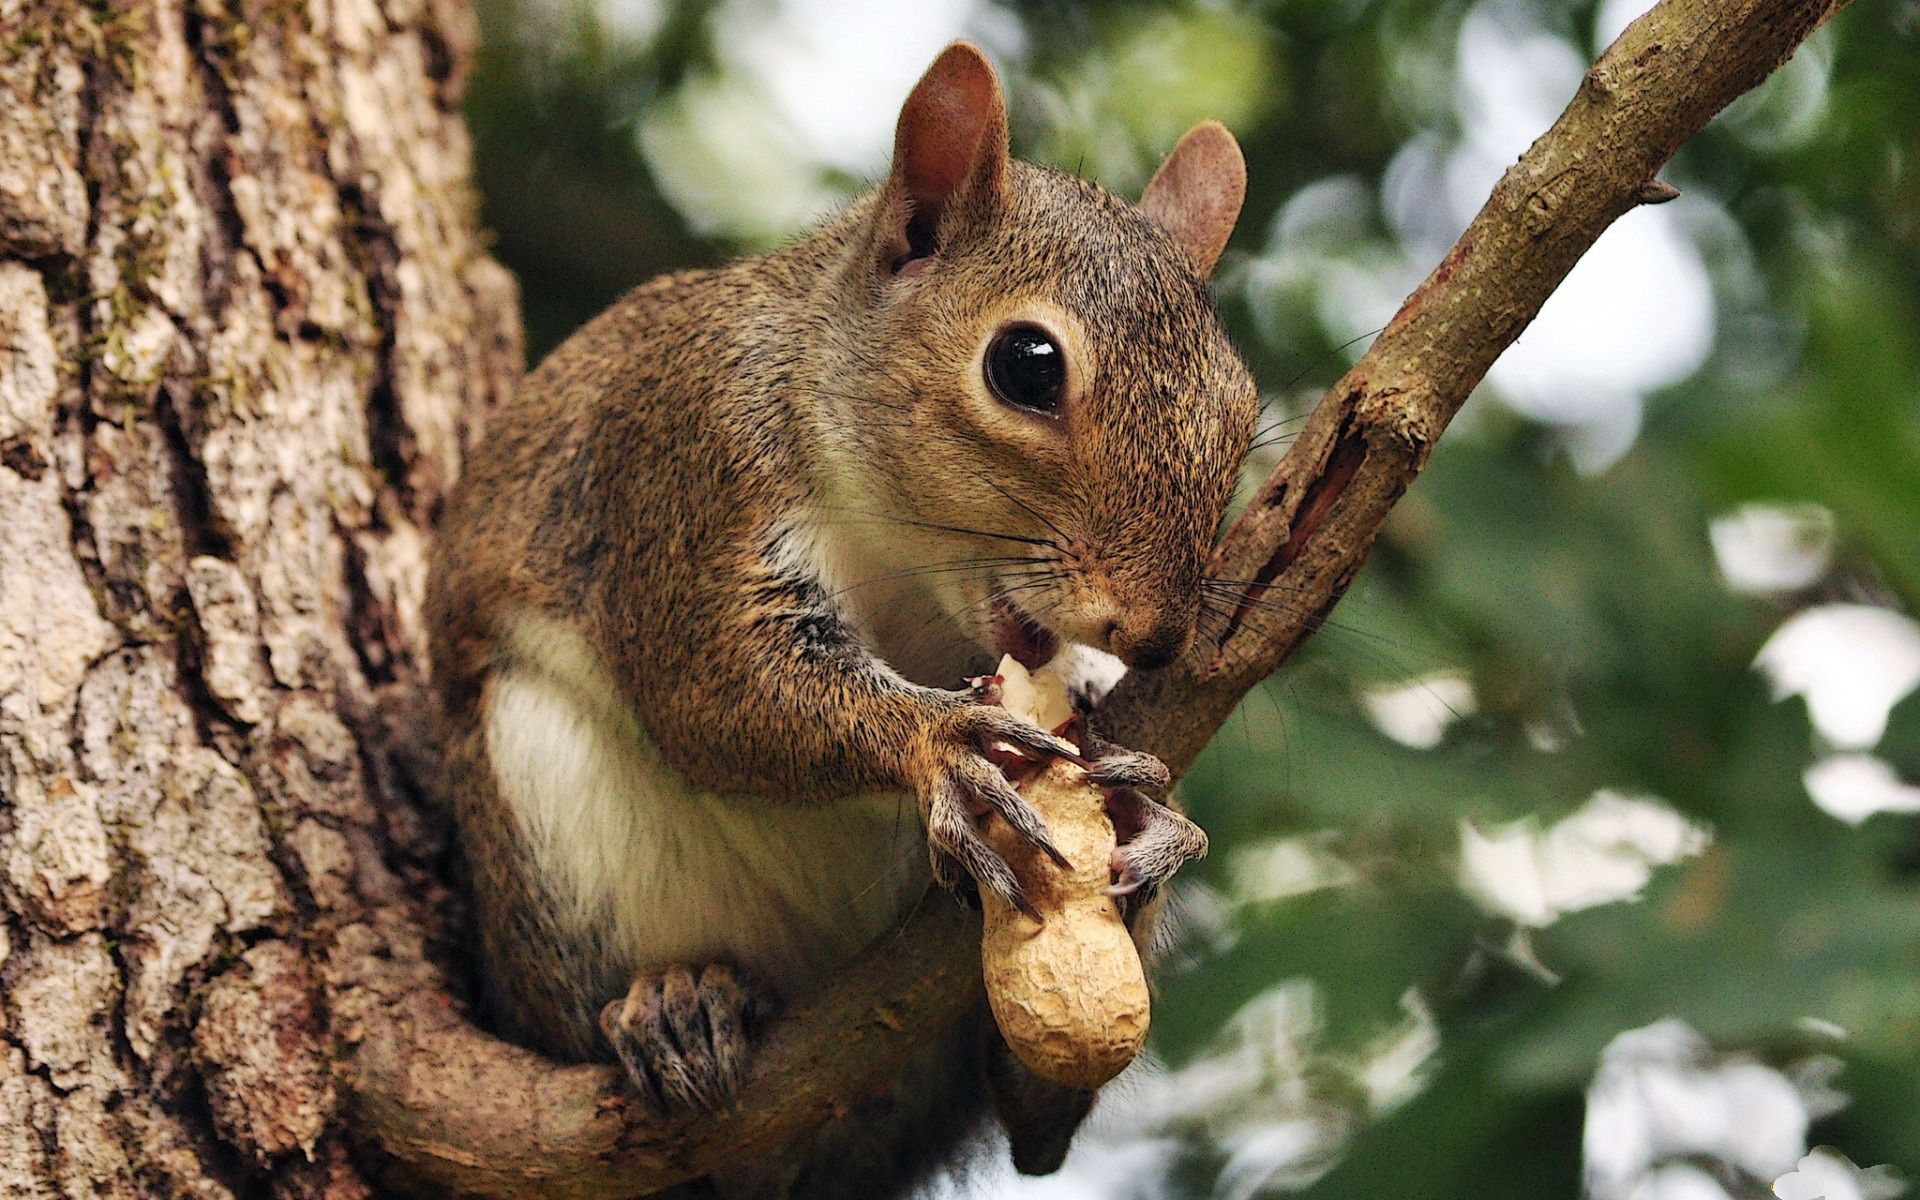 38 squirrel wallpapers for desktop on wallpapersafari - Funny squirrel backgrounds ...